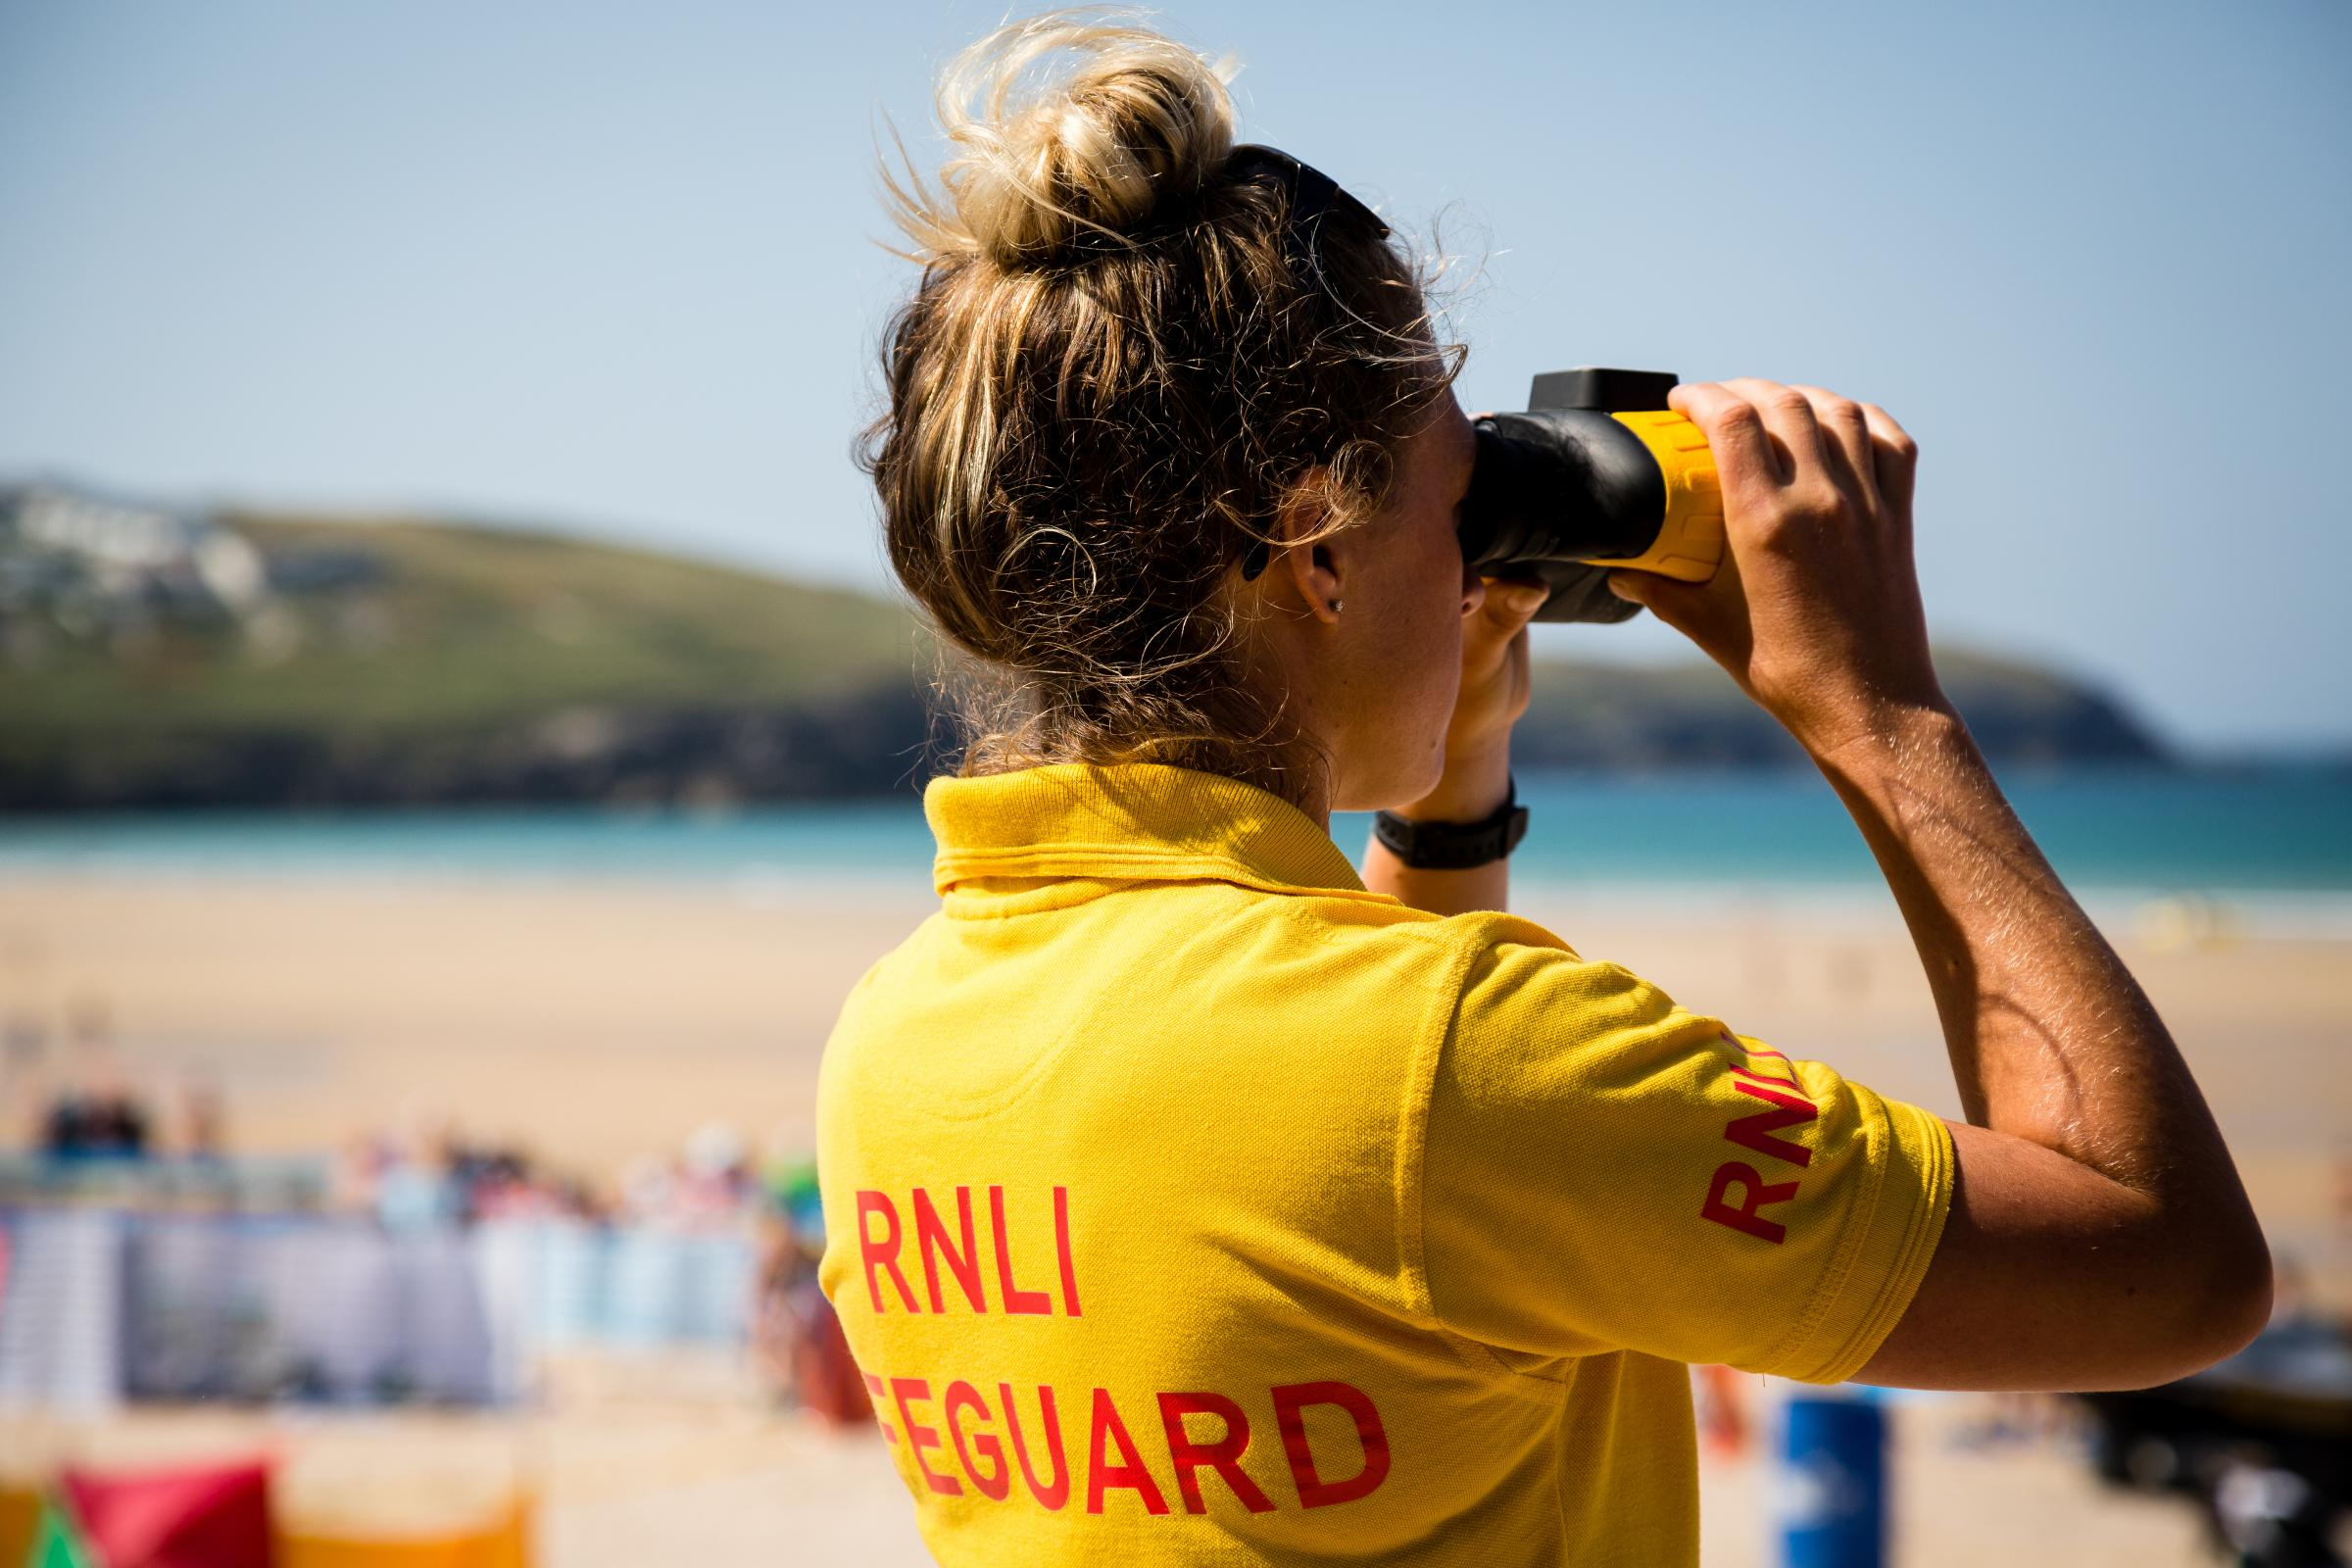 RNLI lifeguard patrols end at West Bay and Lyme Regis | Bridport and Lyme Regis News – Bridport and Lyme Regis News